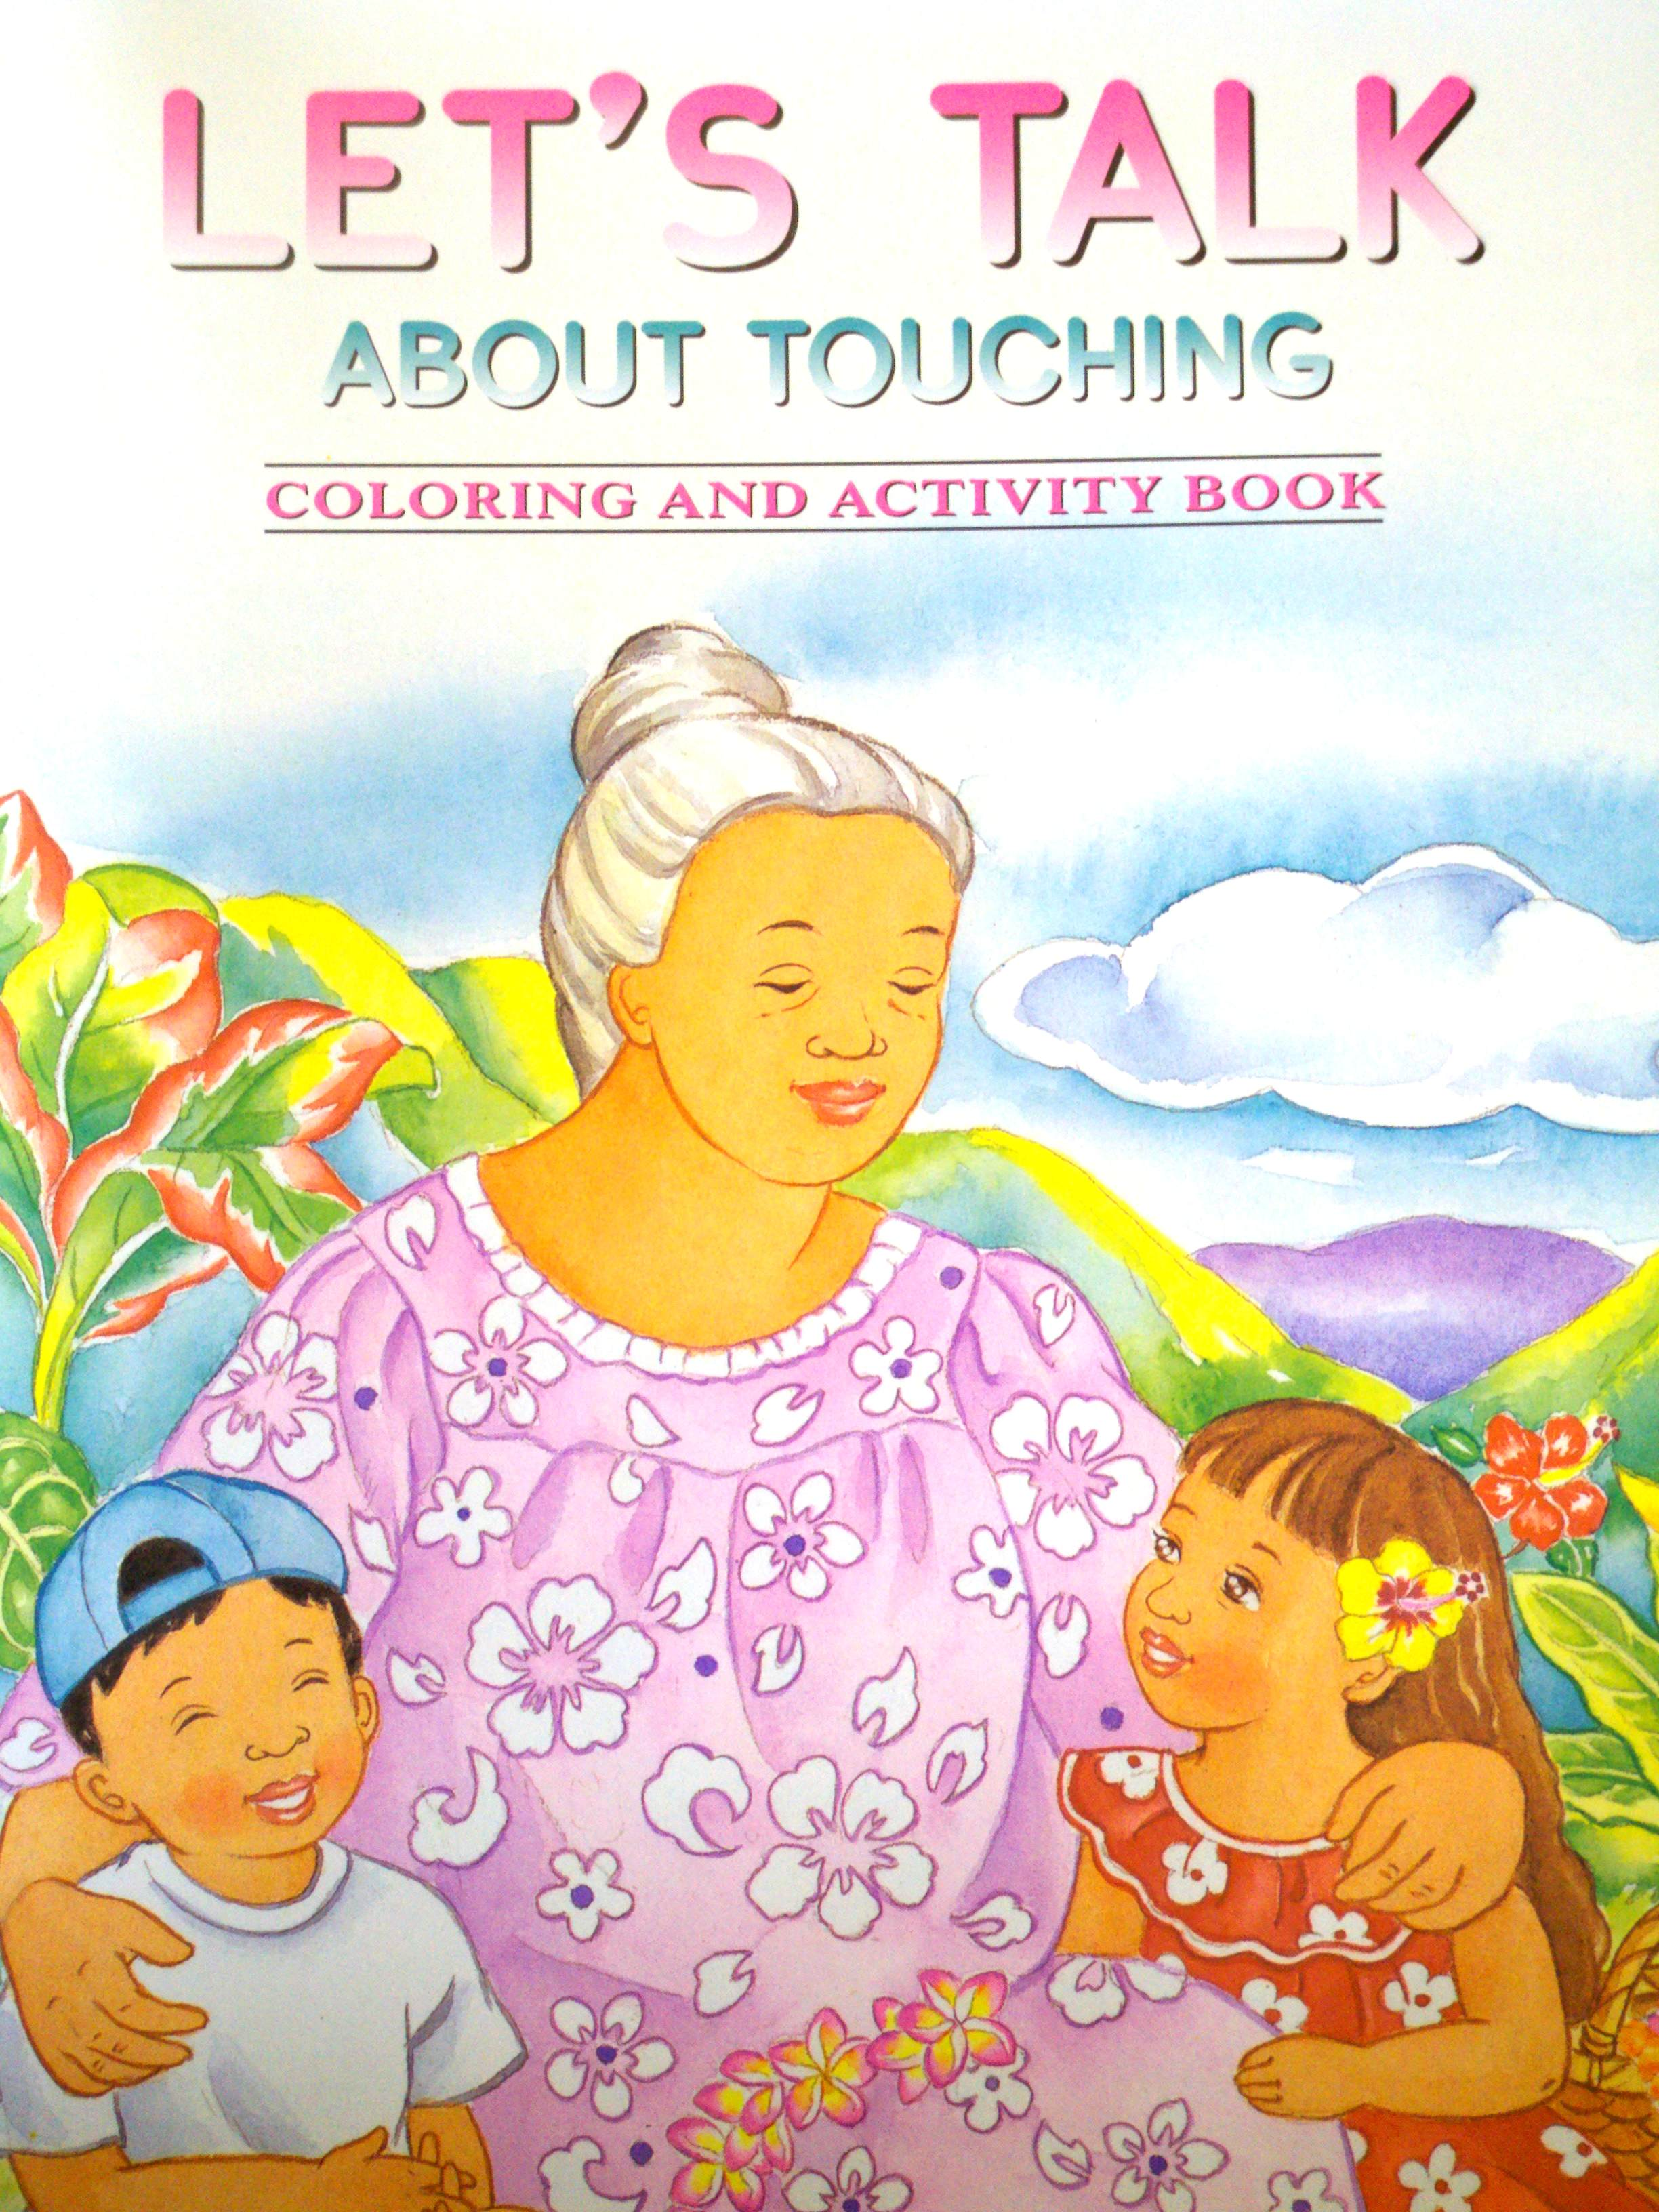 lets talk about touching color book 2011 06 19 08 41 36 231 erotic sex cartoon videos court systems in the virgin islands court ...